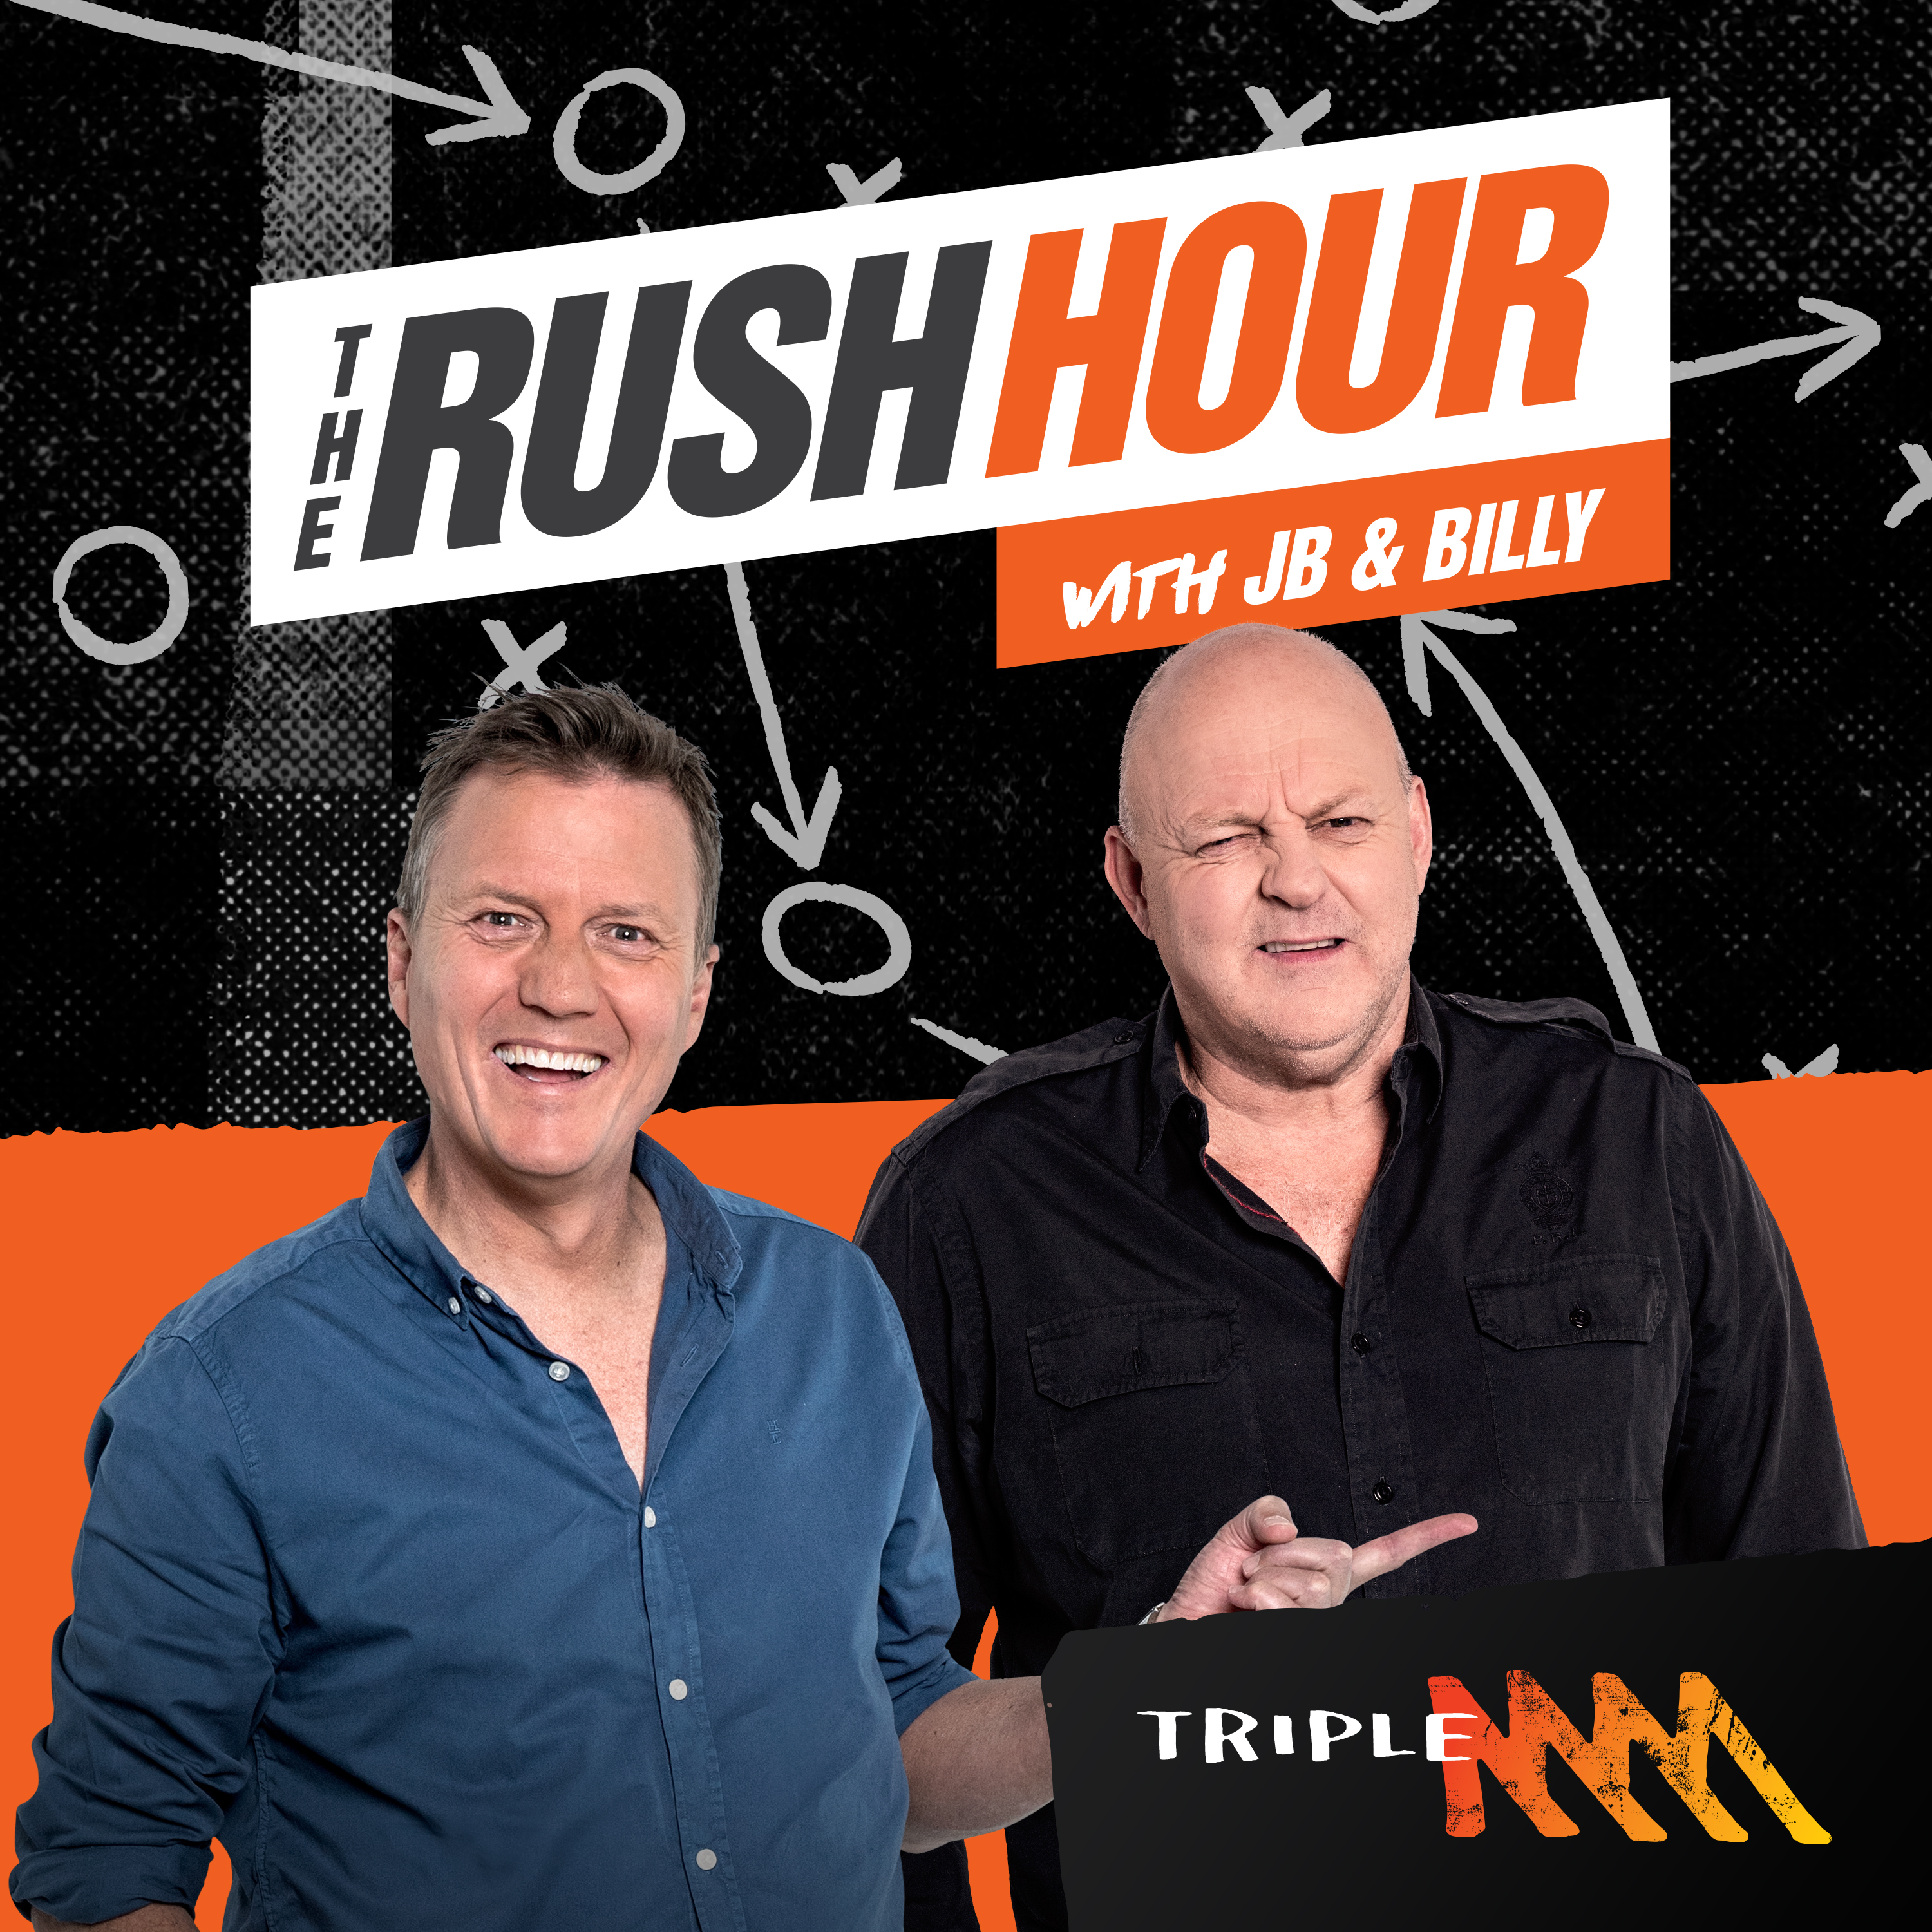 Rush Hour Melbourne: Best Bits